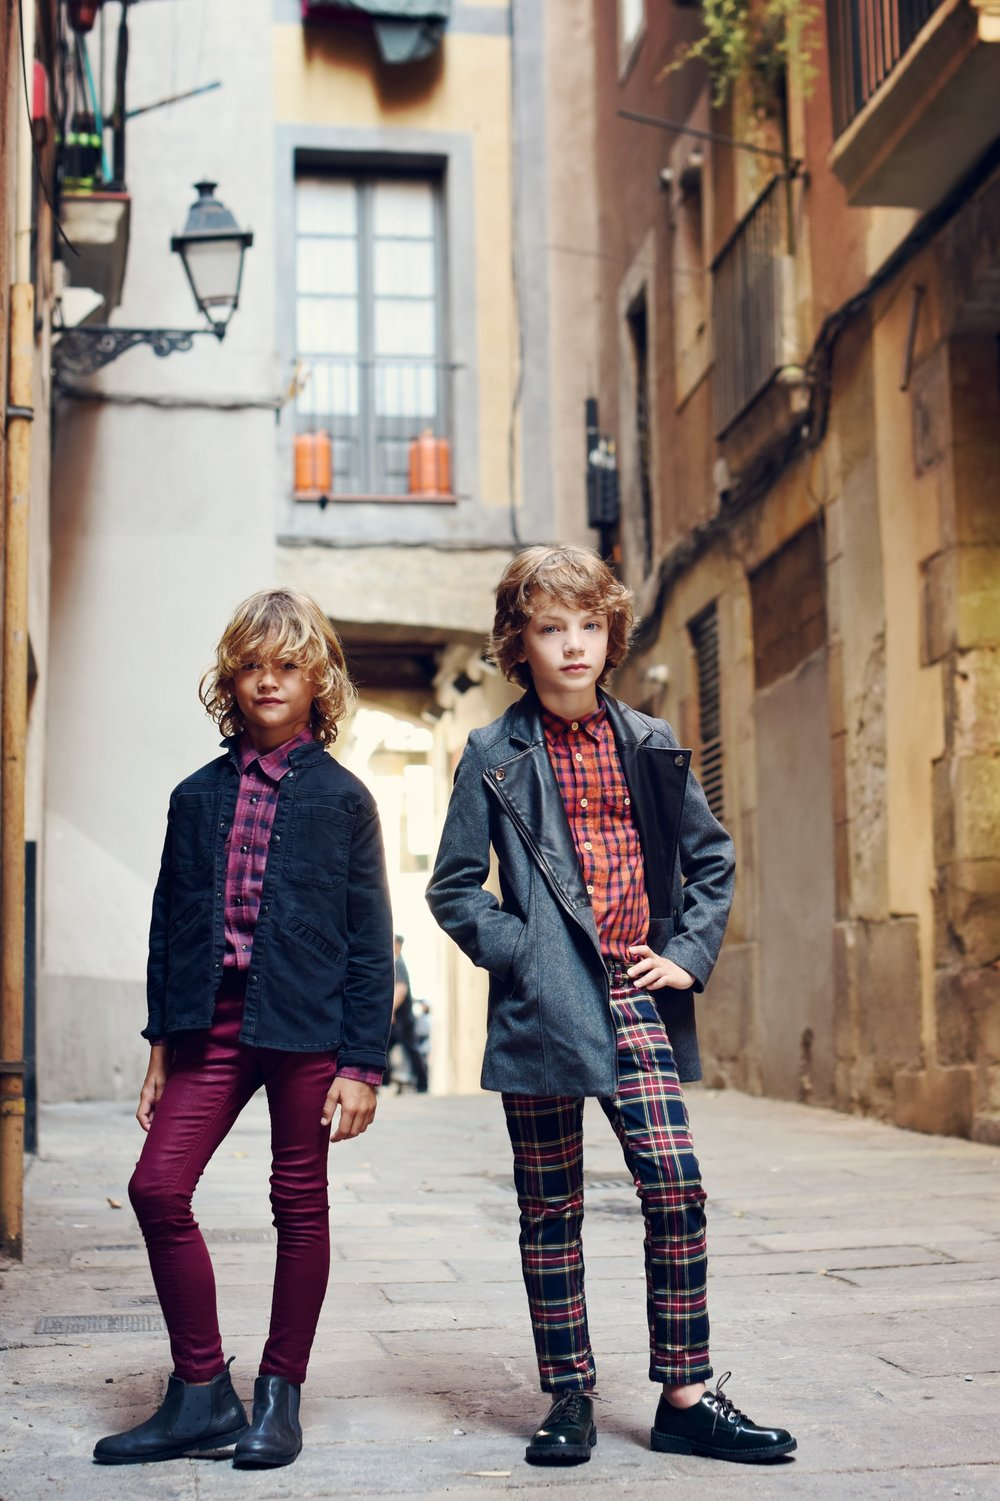 Enfant+Street+Style+by+Gina+Kim+Photography-3.jpeg